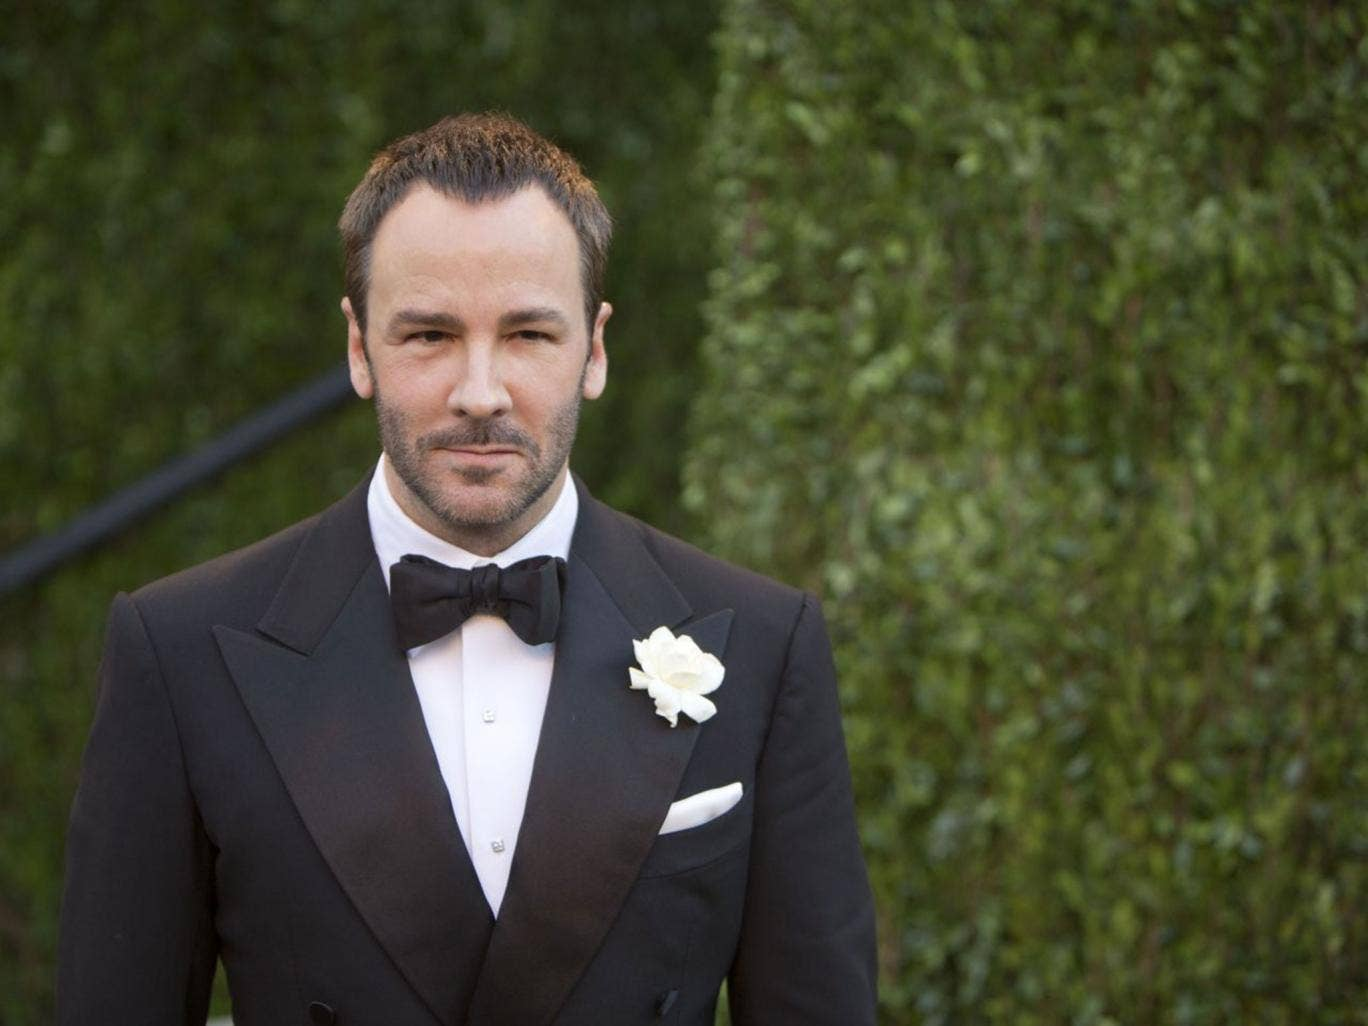 Tom Ford refuses to dress Melania Trump | The Independent